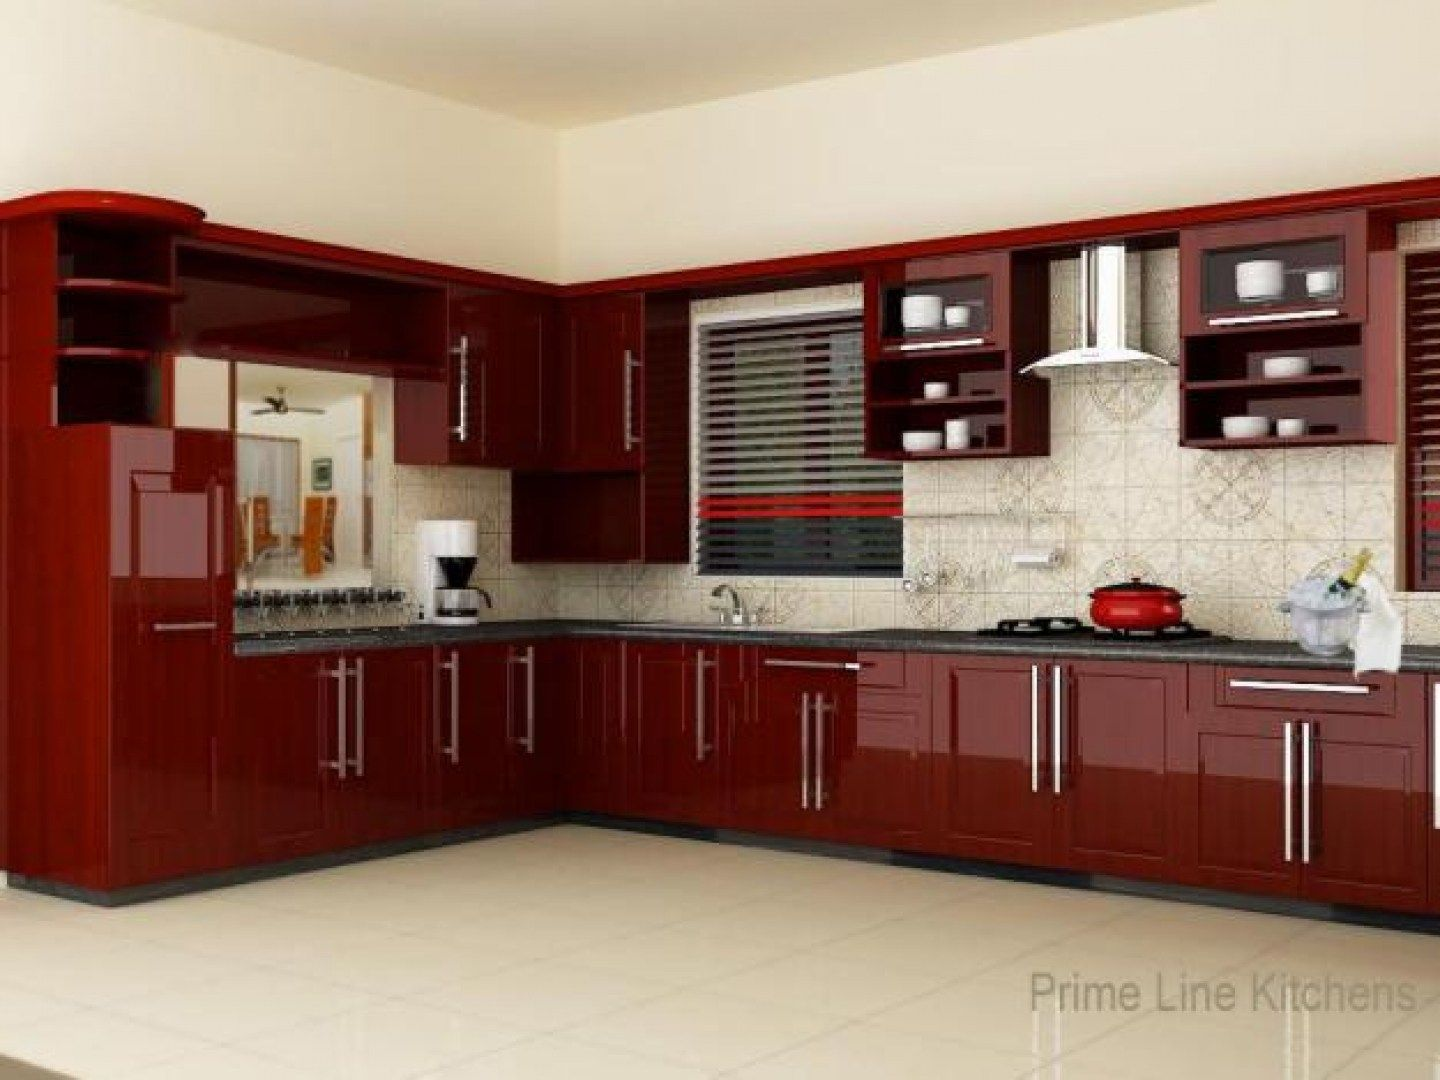 Kitchen design ideas kitchen woodwork designs hyderabad Design for cabinet for kitchen